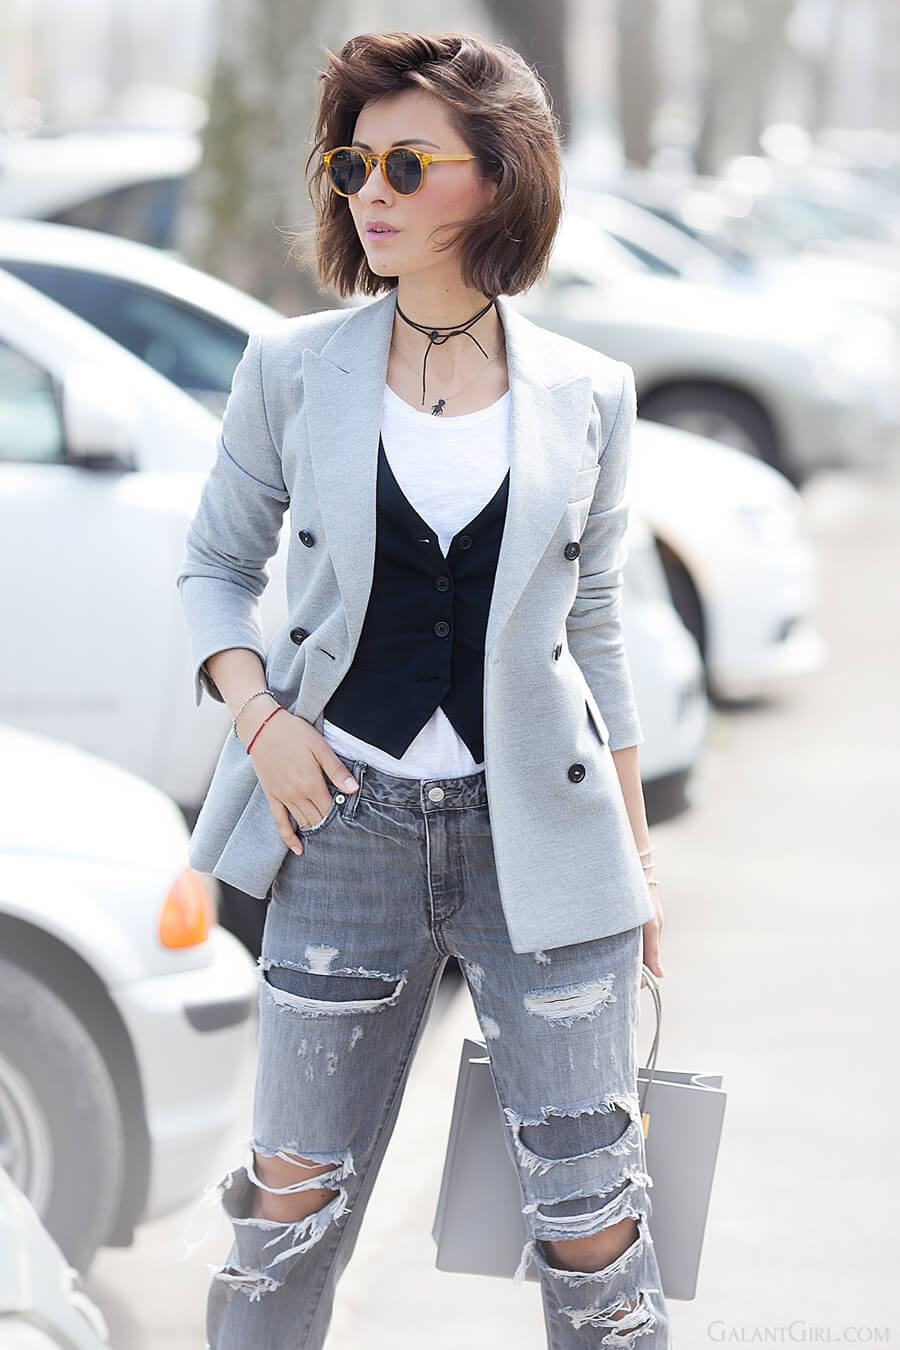 blazer-outfit-with-classic-waistcoat-for-spring-2016